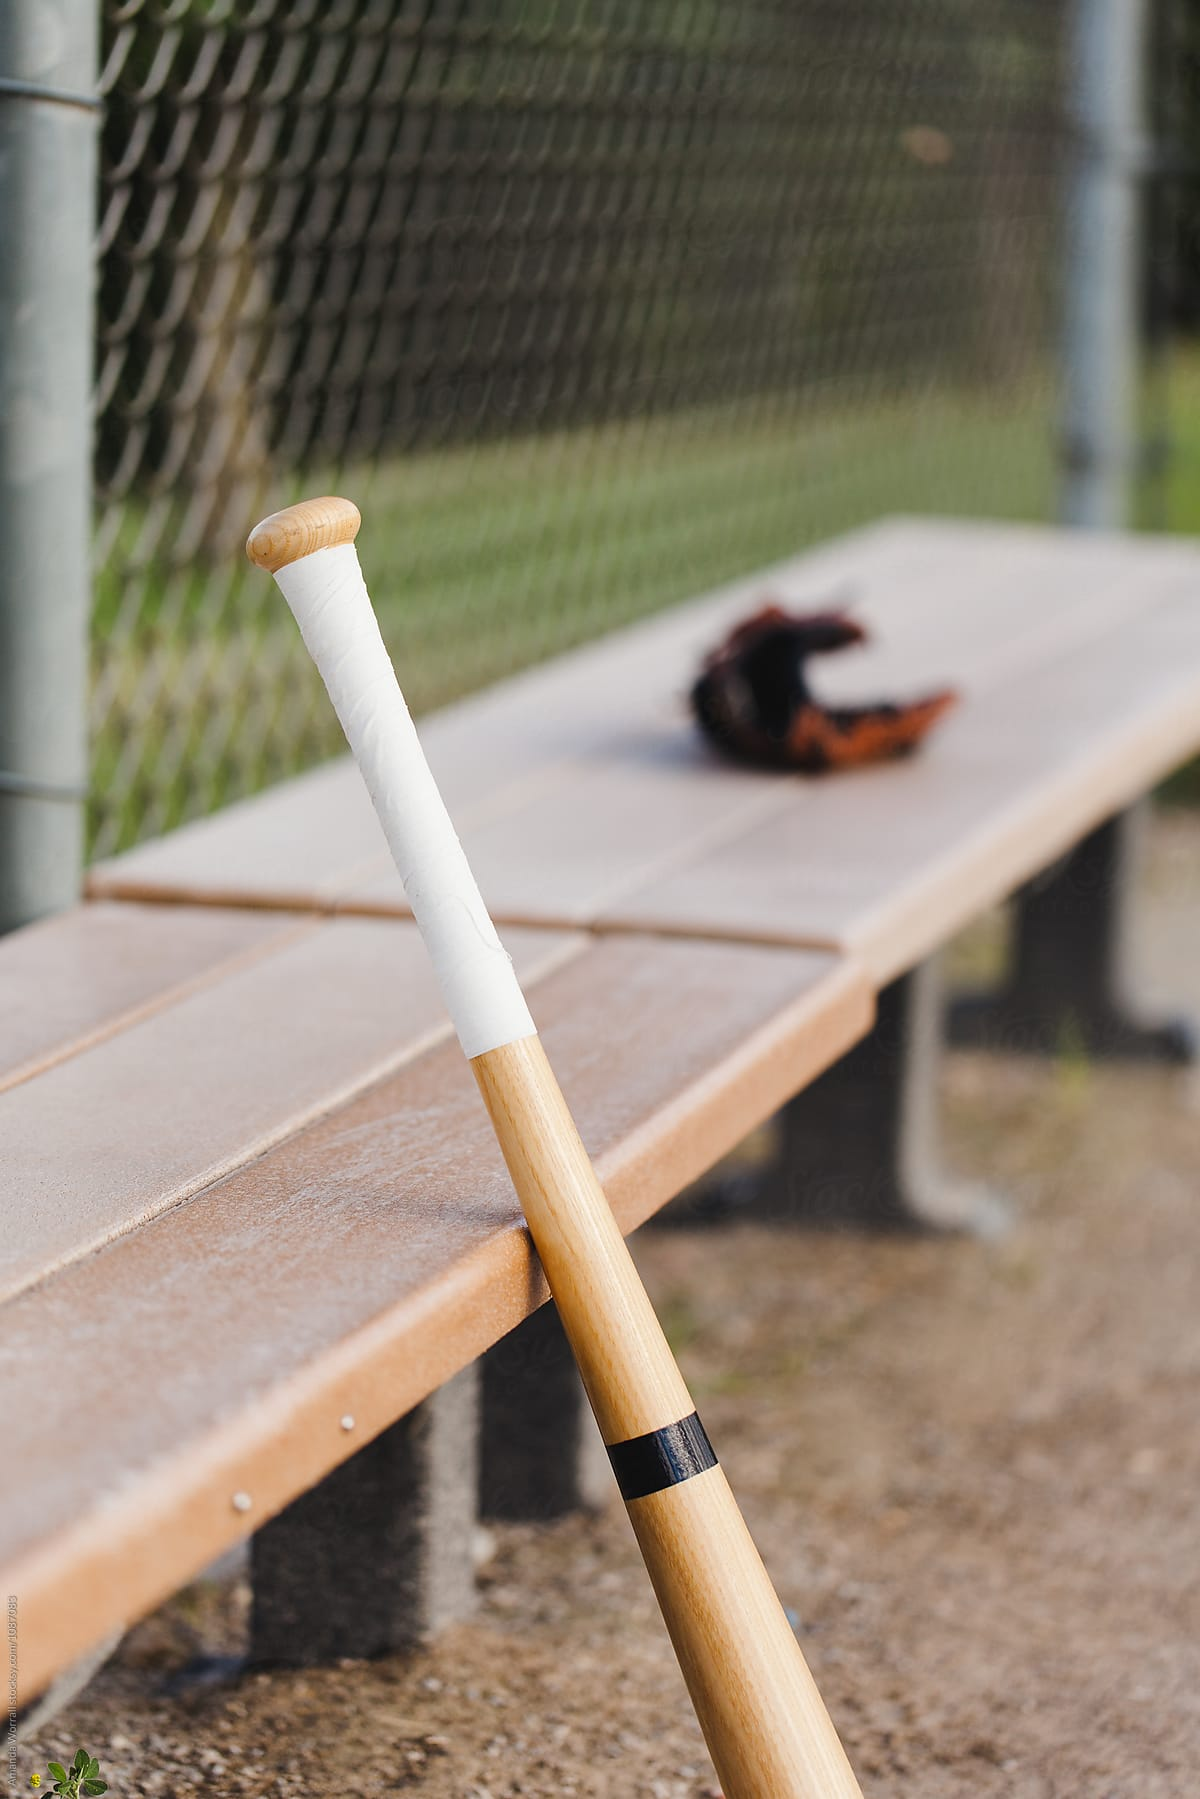 Baseball Bat Leaning Against The Dugout Bench Stocksy United